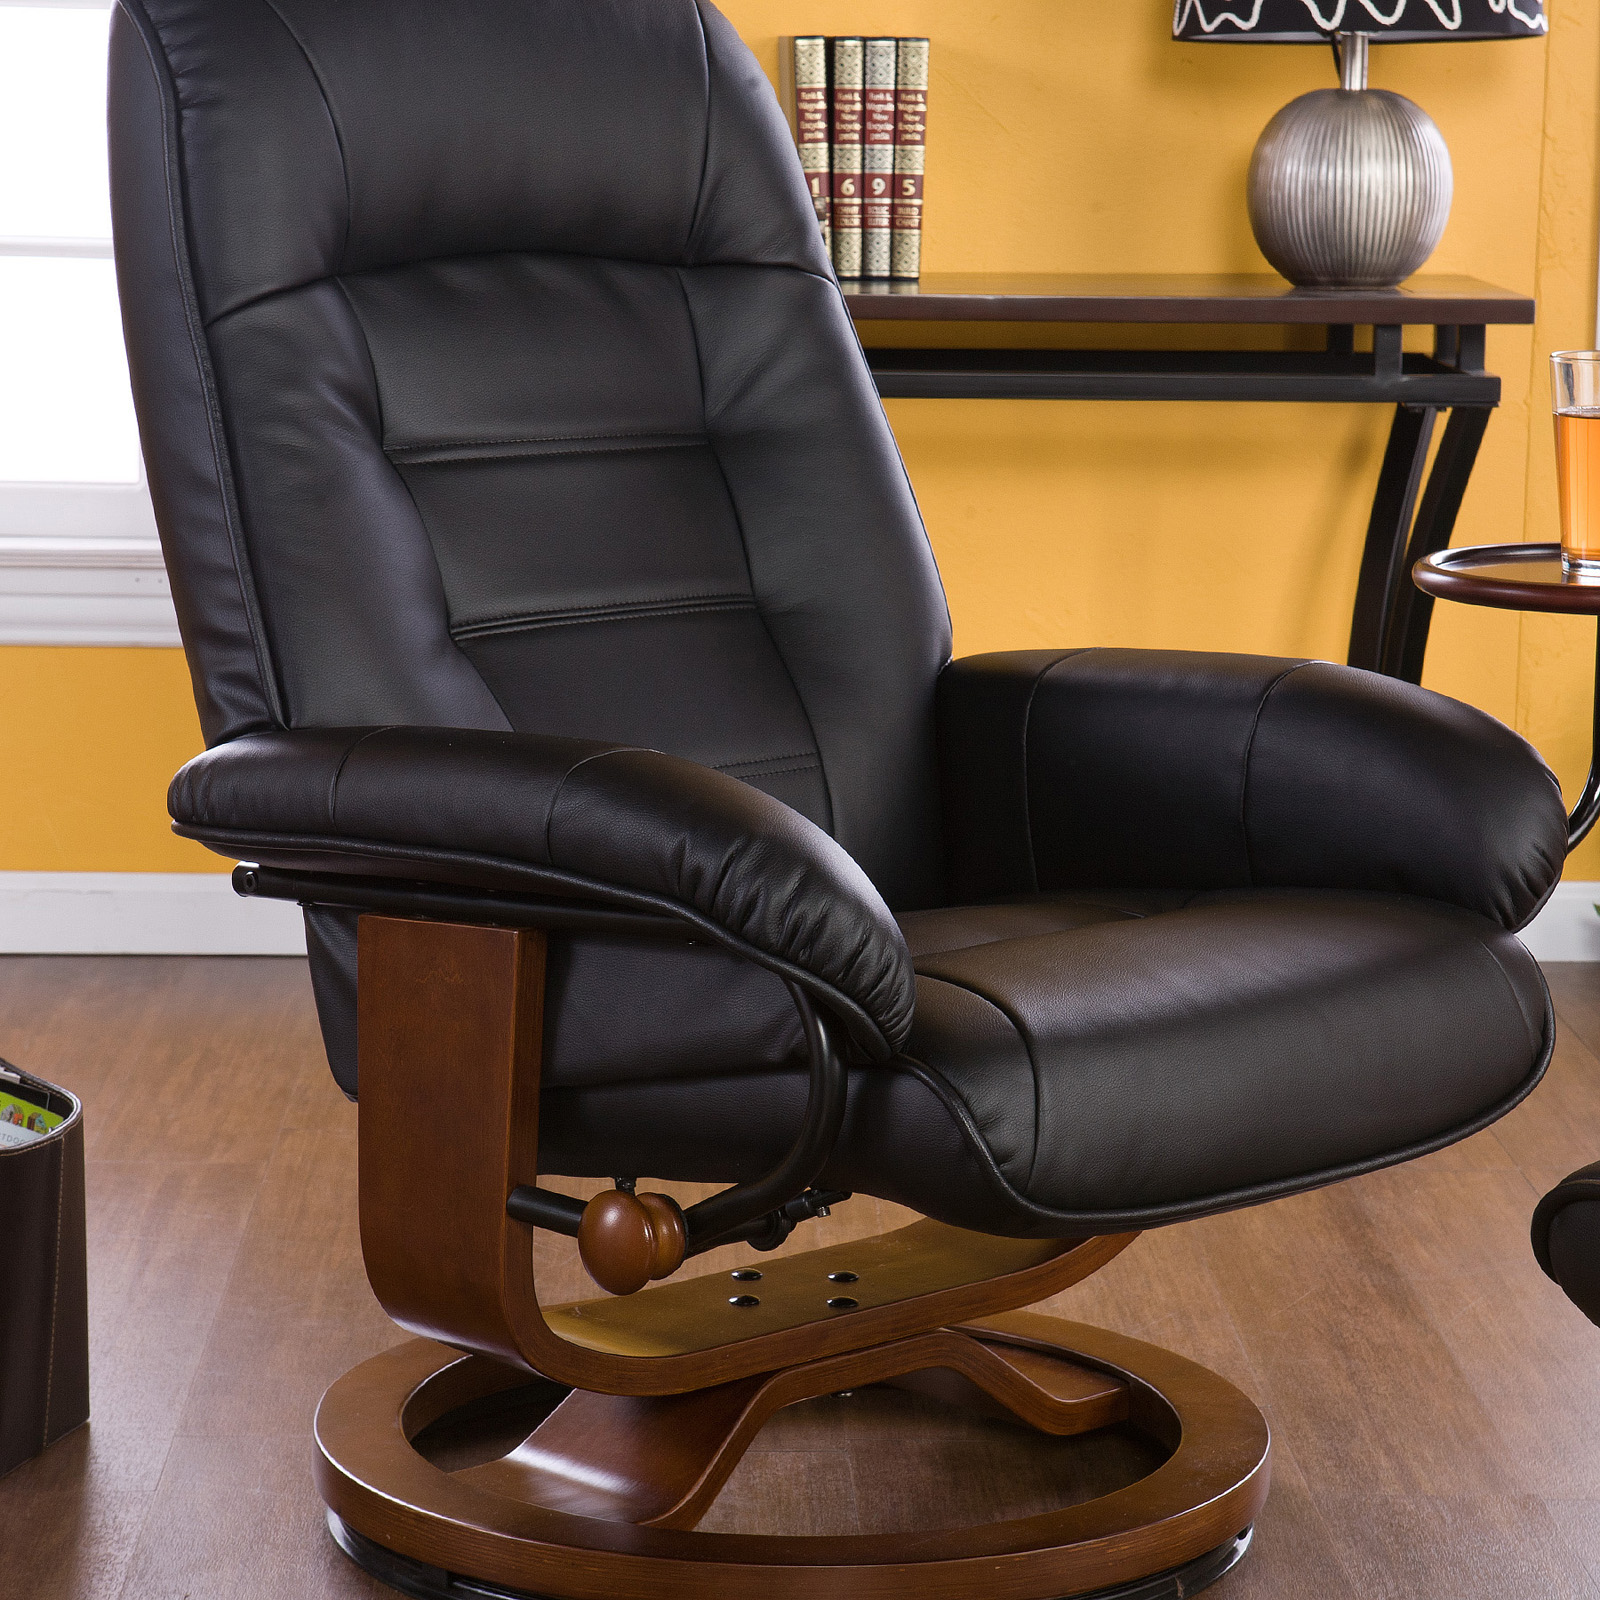 & Southern Enterprises Leather Swivel Recliner with Ottoman | Hayneedle islam-shia.org